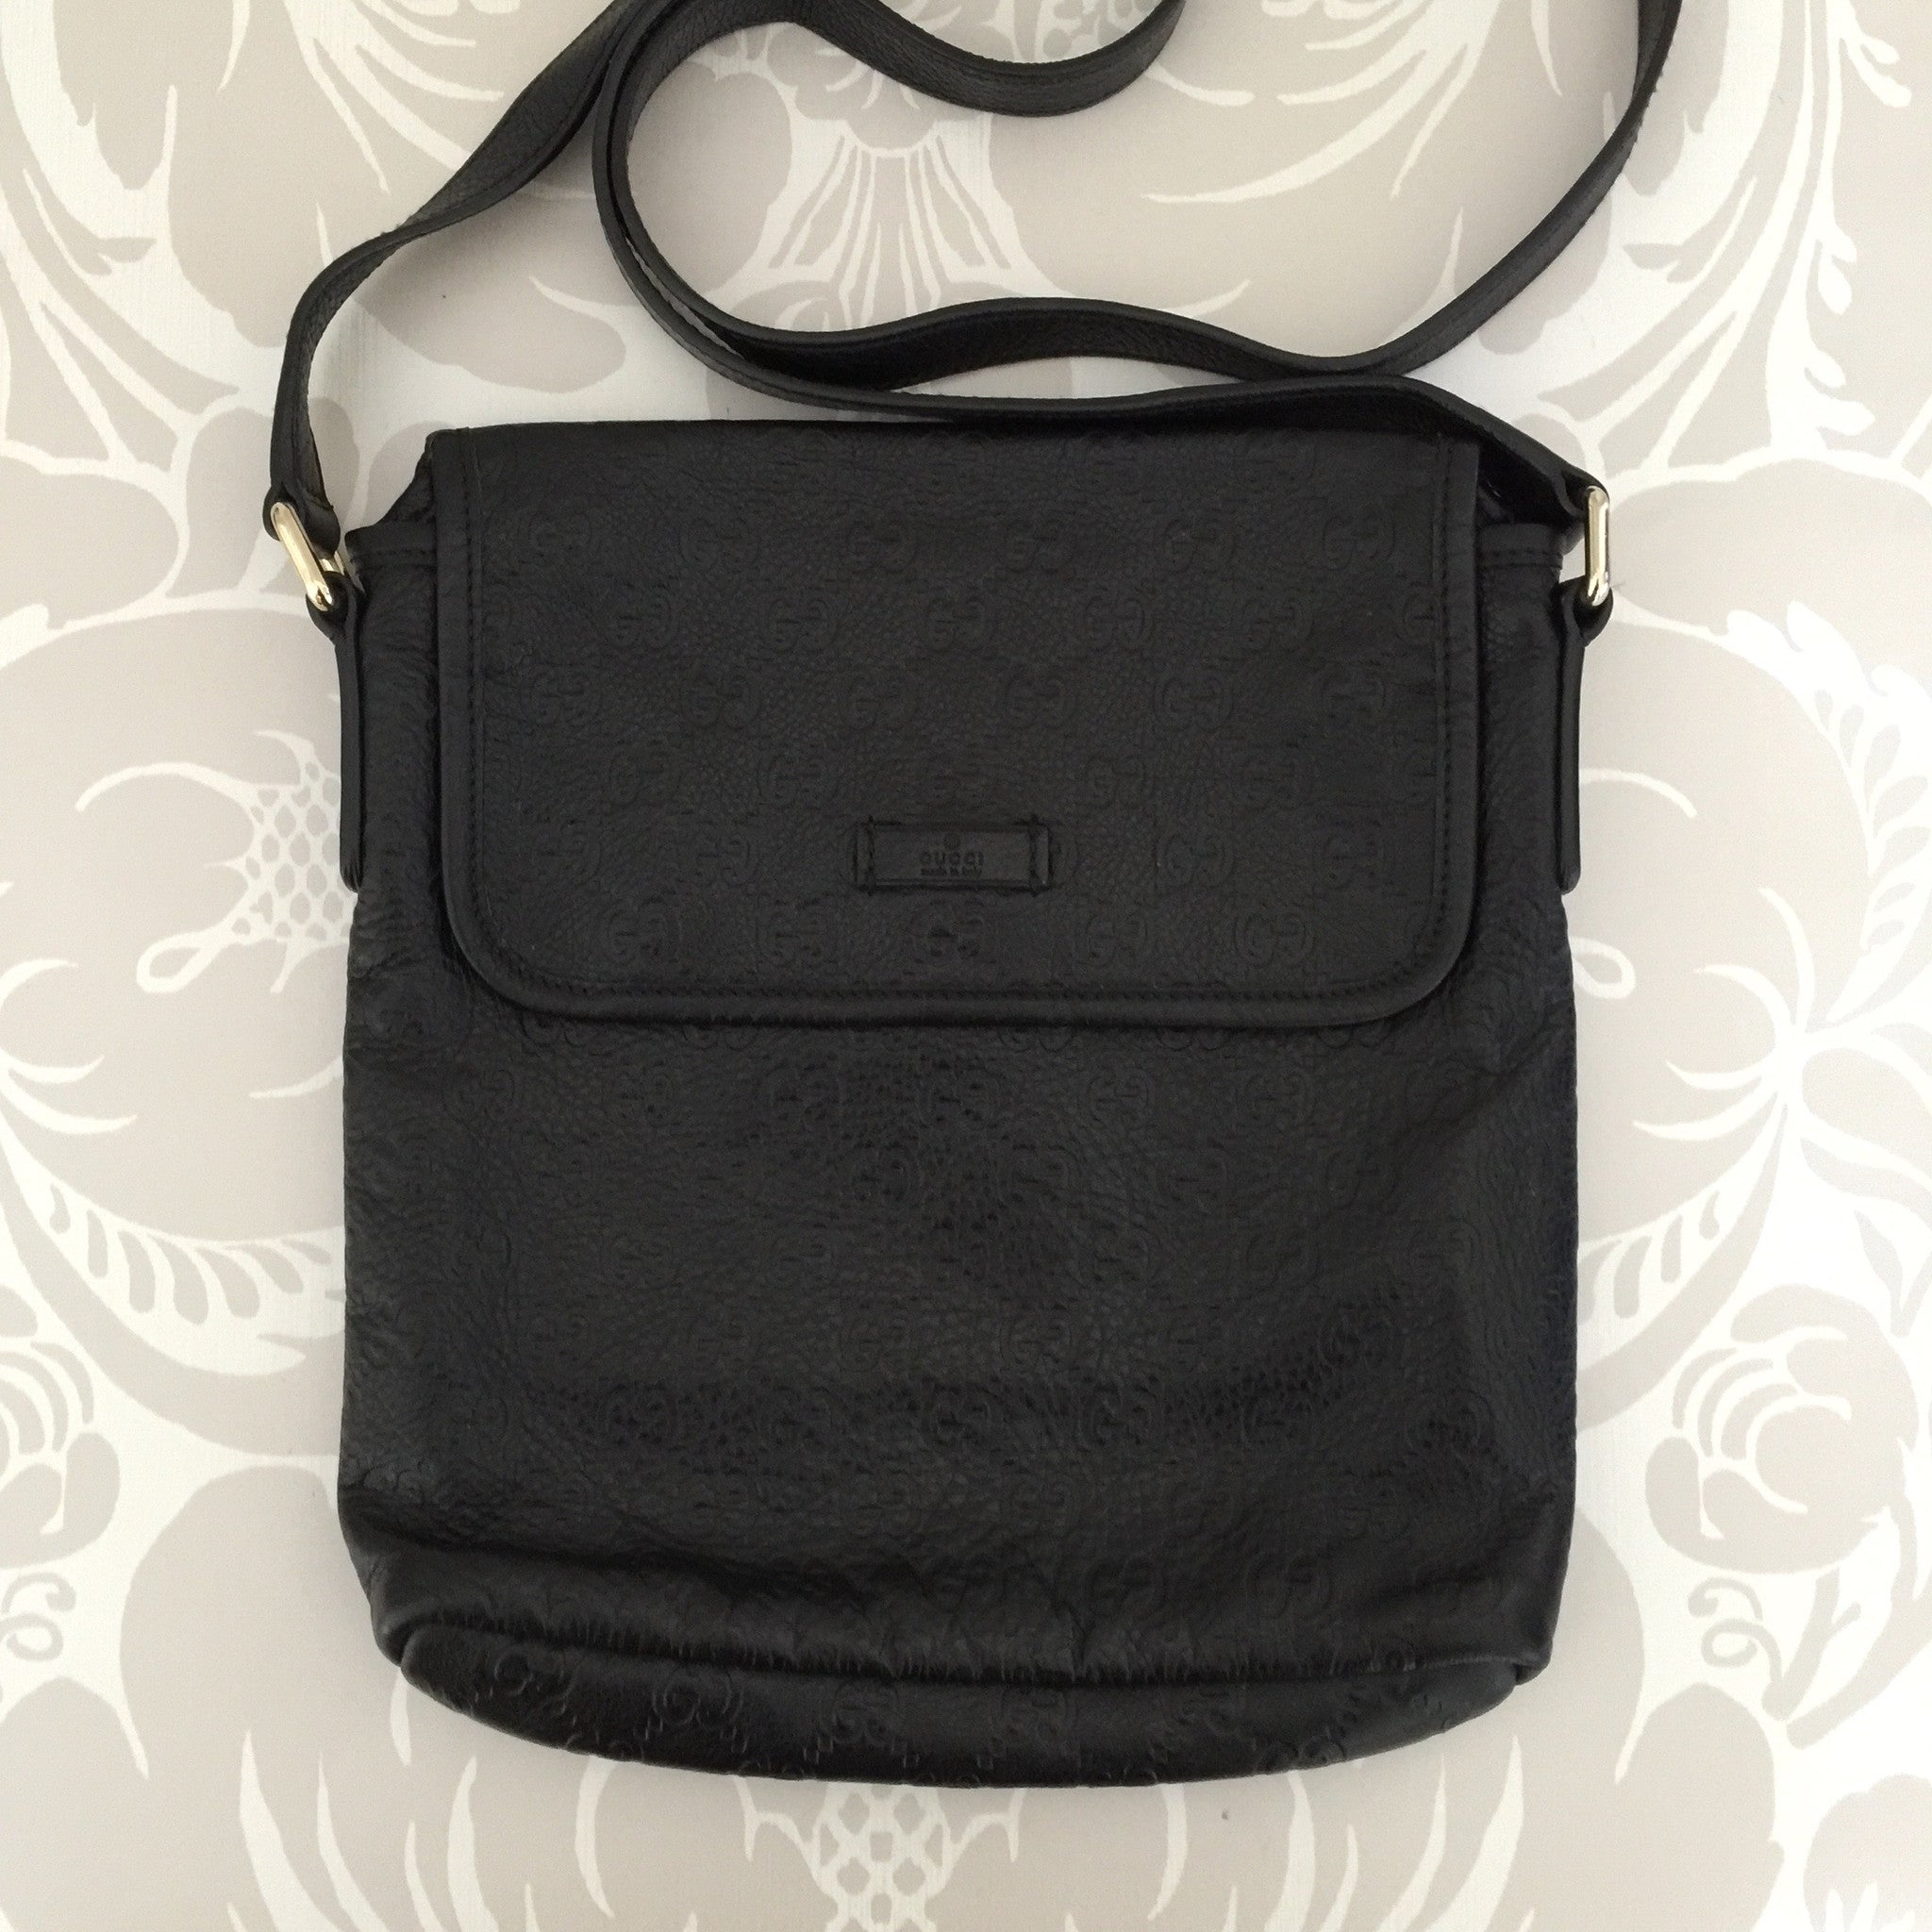 Authentic GUCCI Leather Guccissima Crossbody